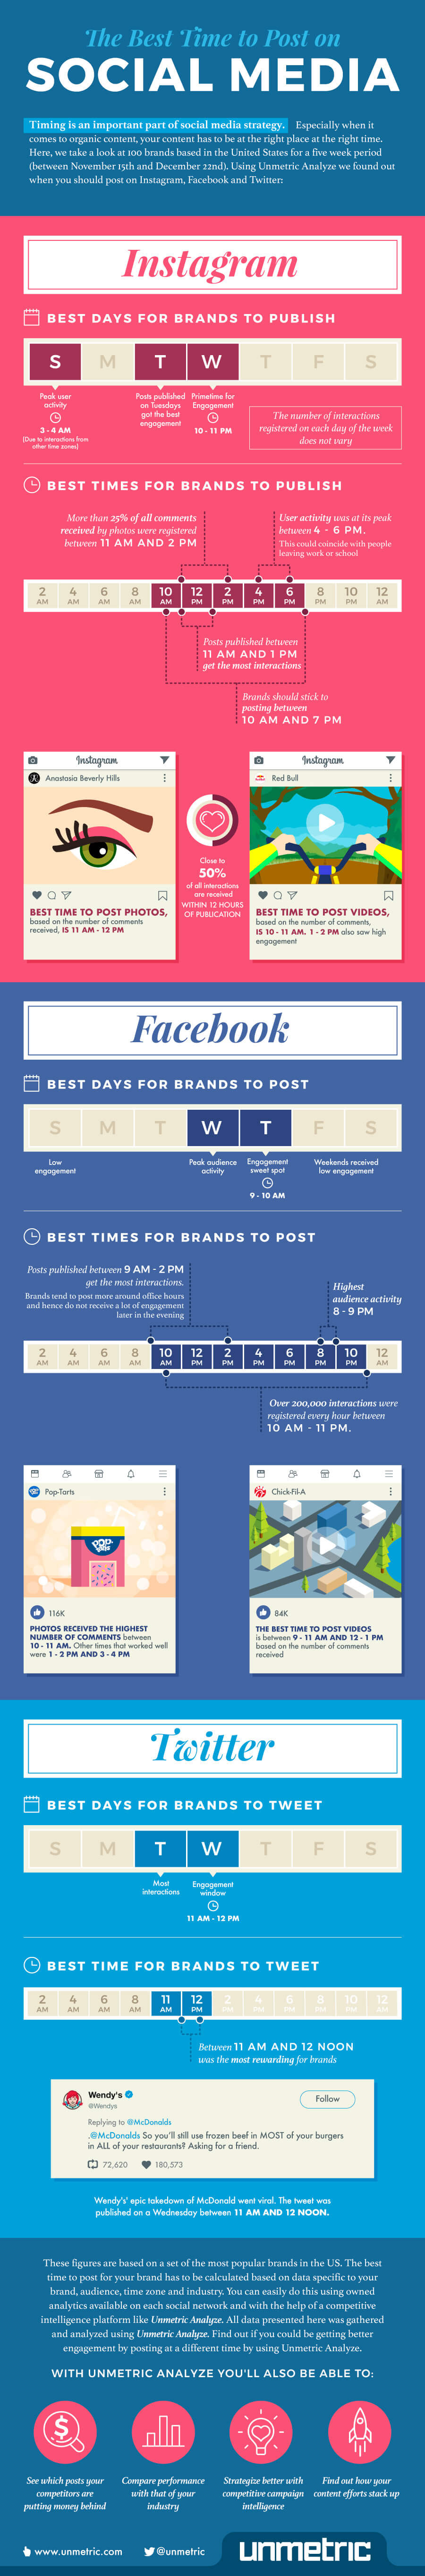 Best Time to Post on Social Media Infographic